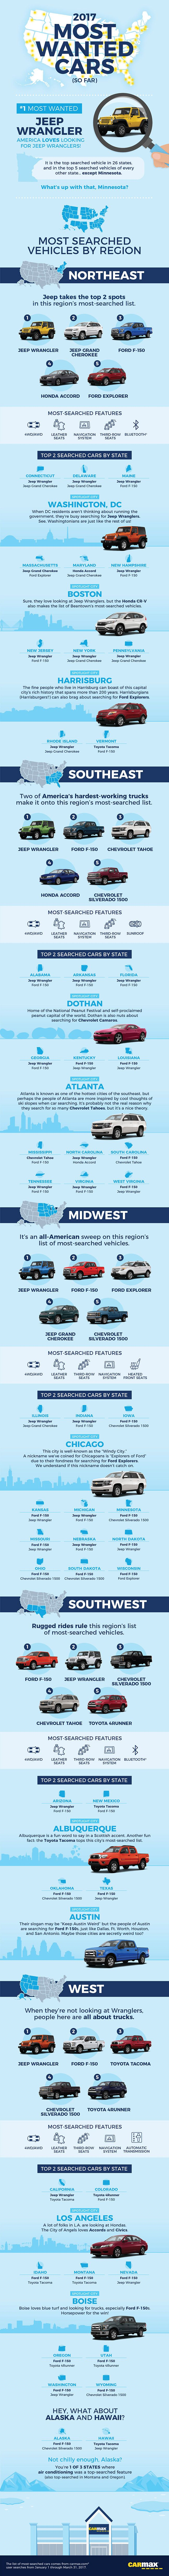 2017 Most wanted Cars (Infographic)